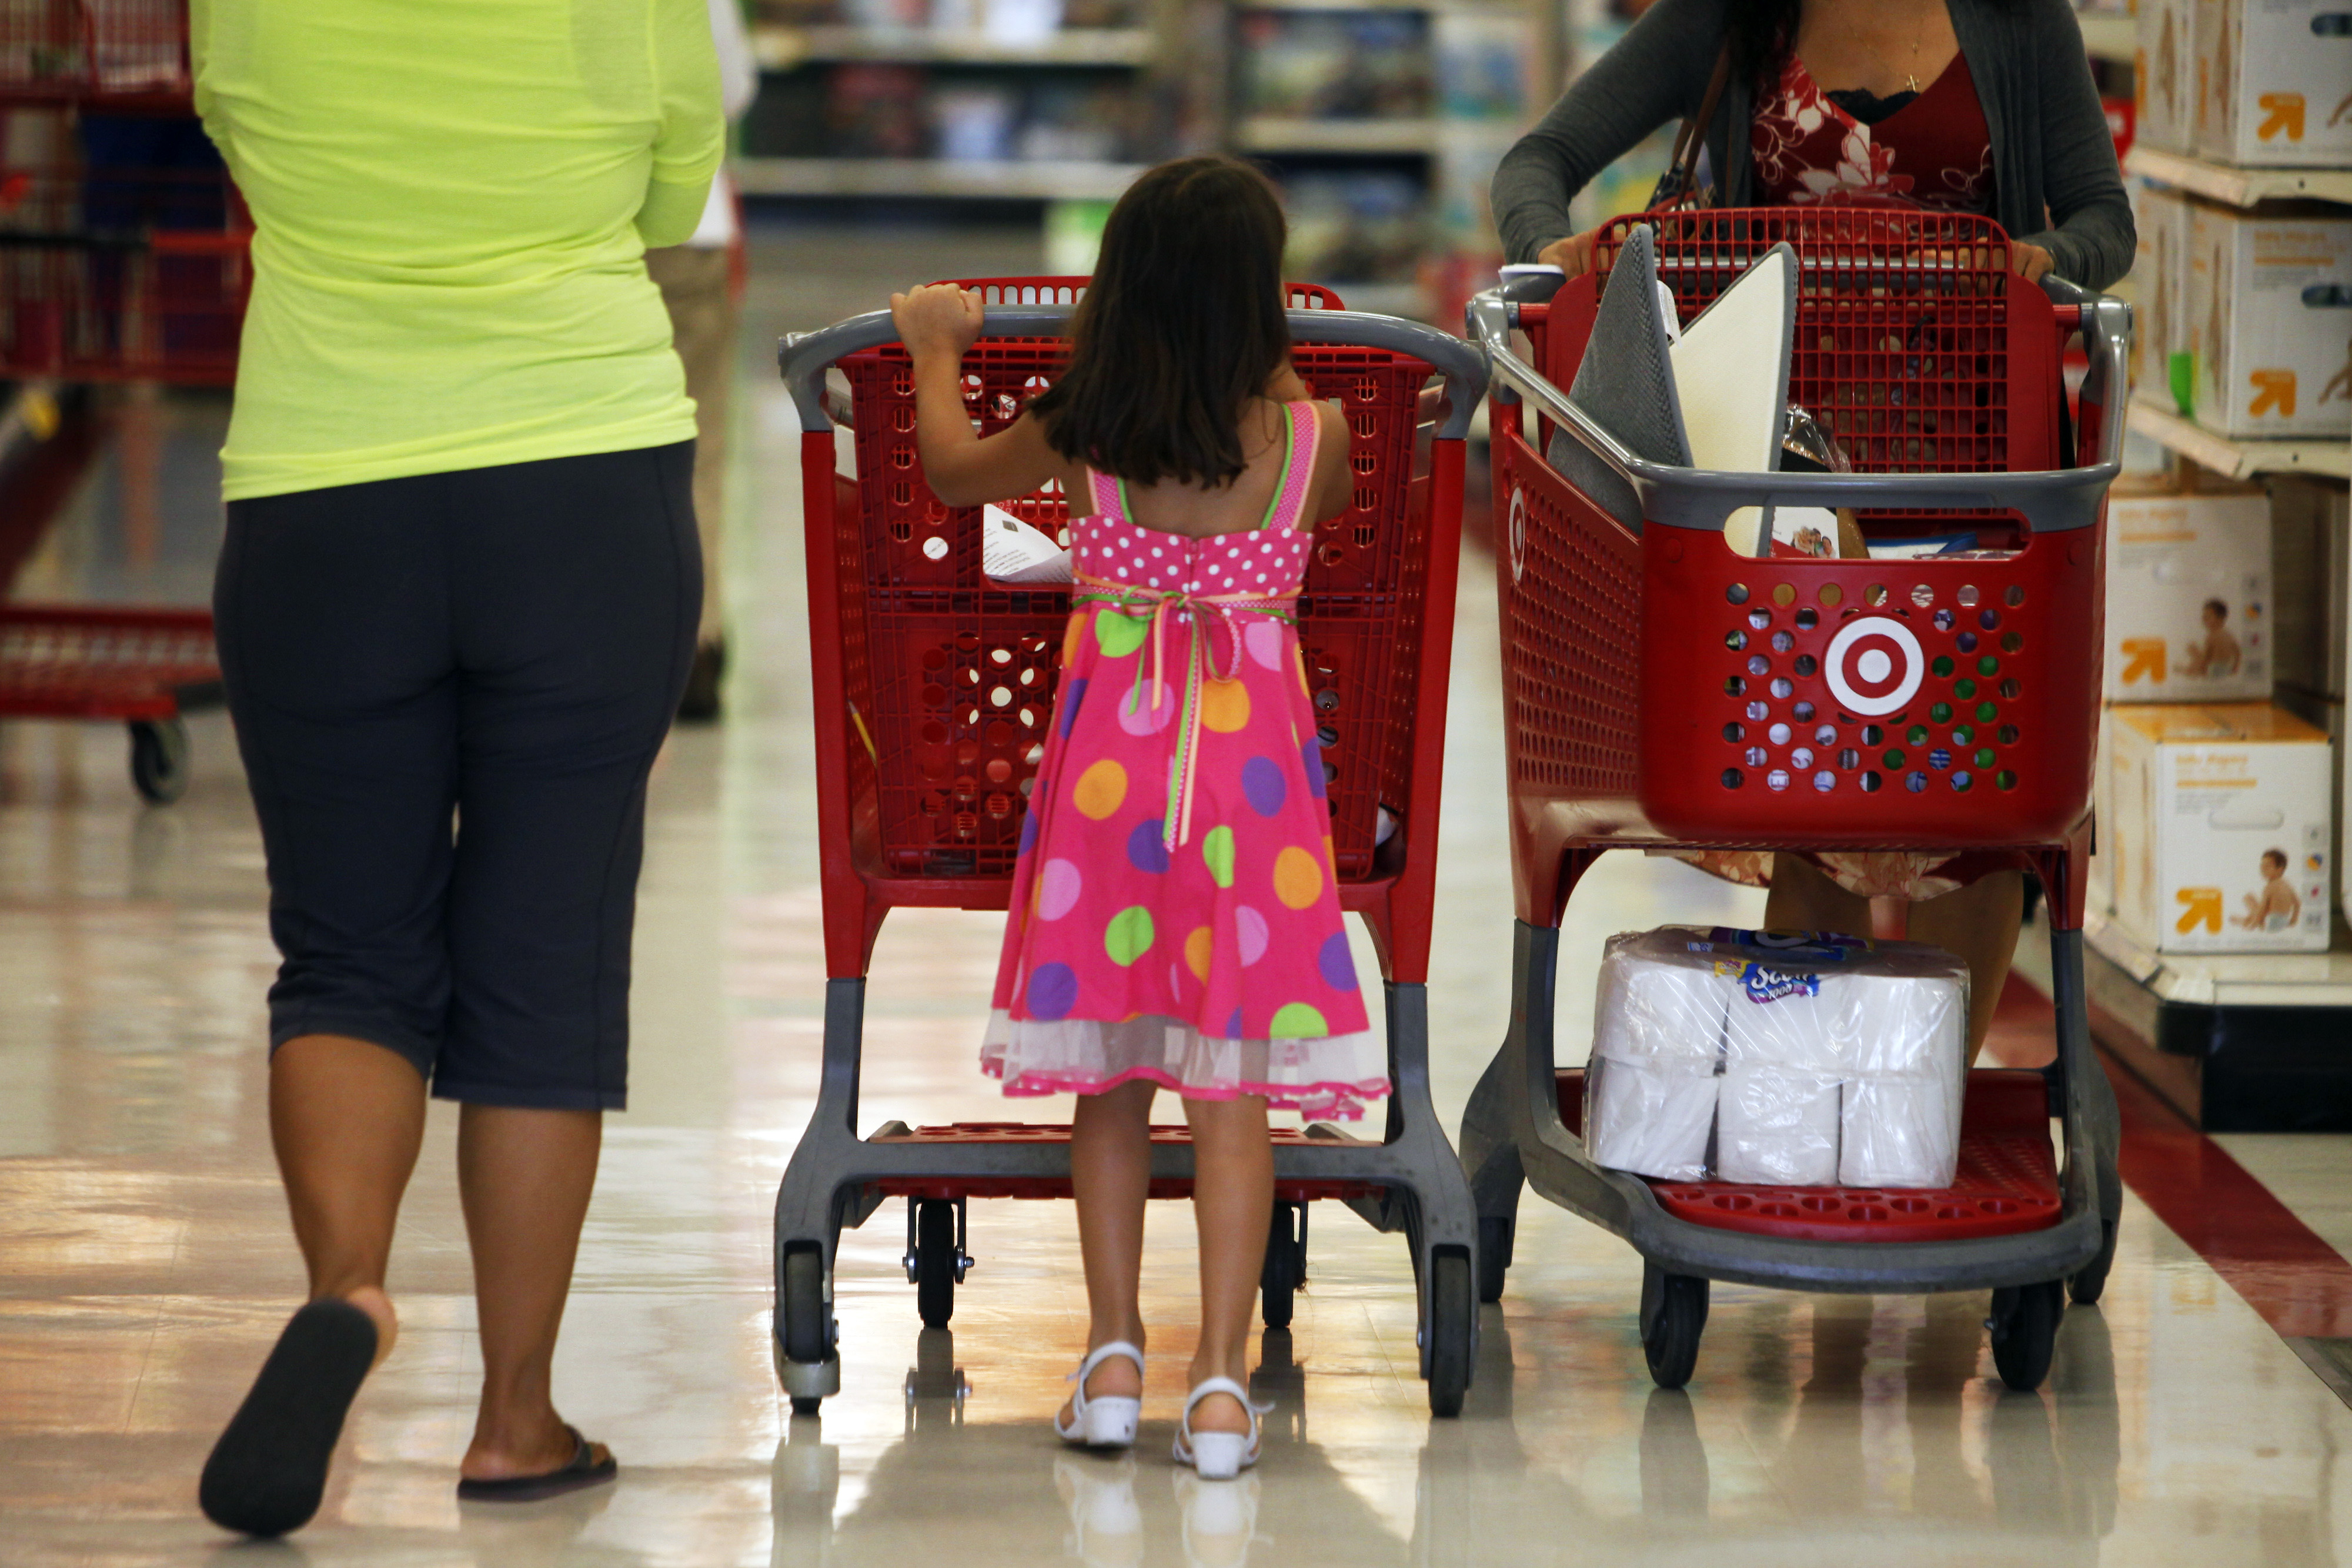 A young girl pushes a Target Corp. shopping cart inside a Target Store in Torrance, California, U.S., on Tuesday, August 20, 2013.